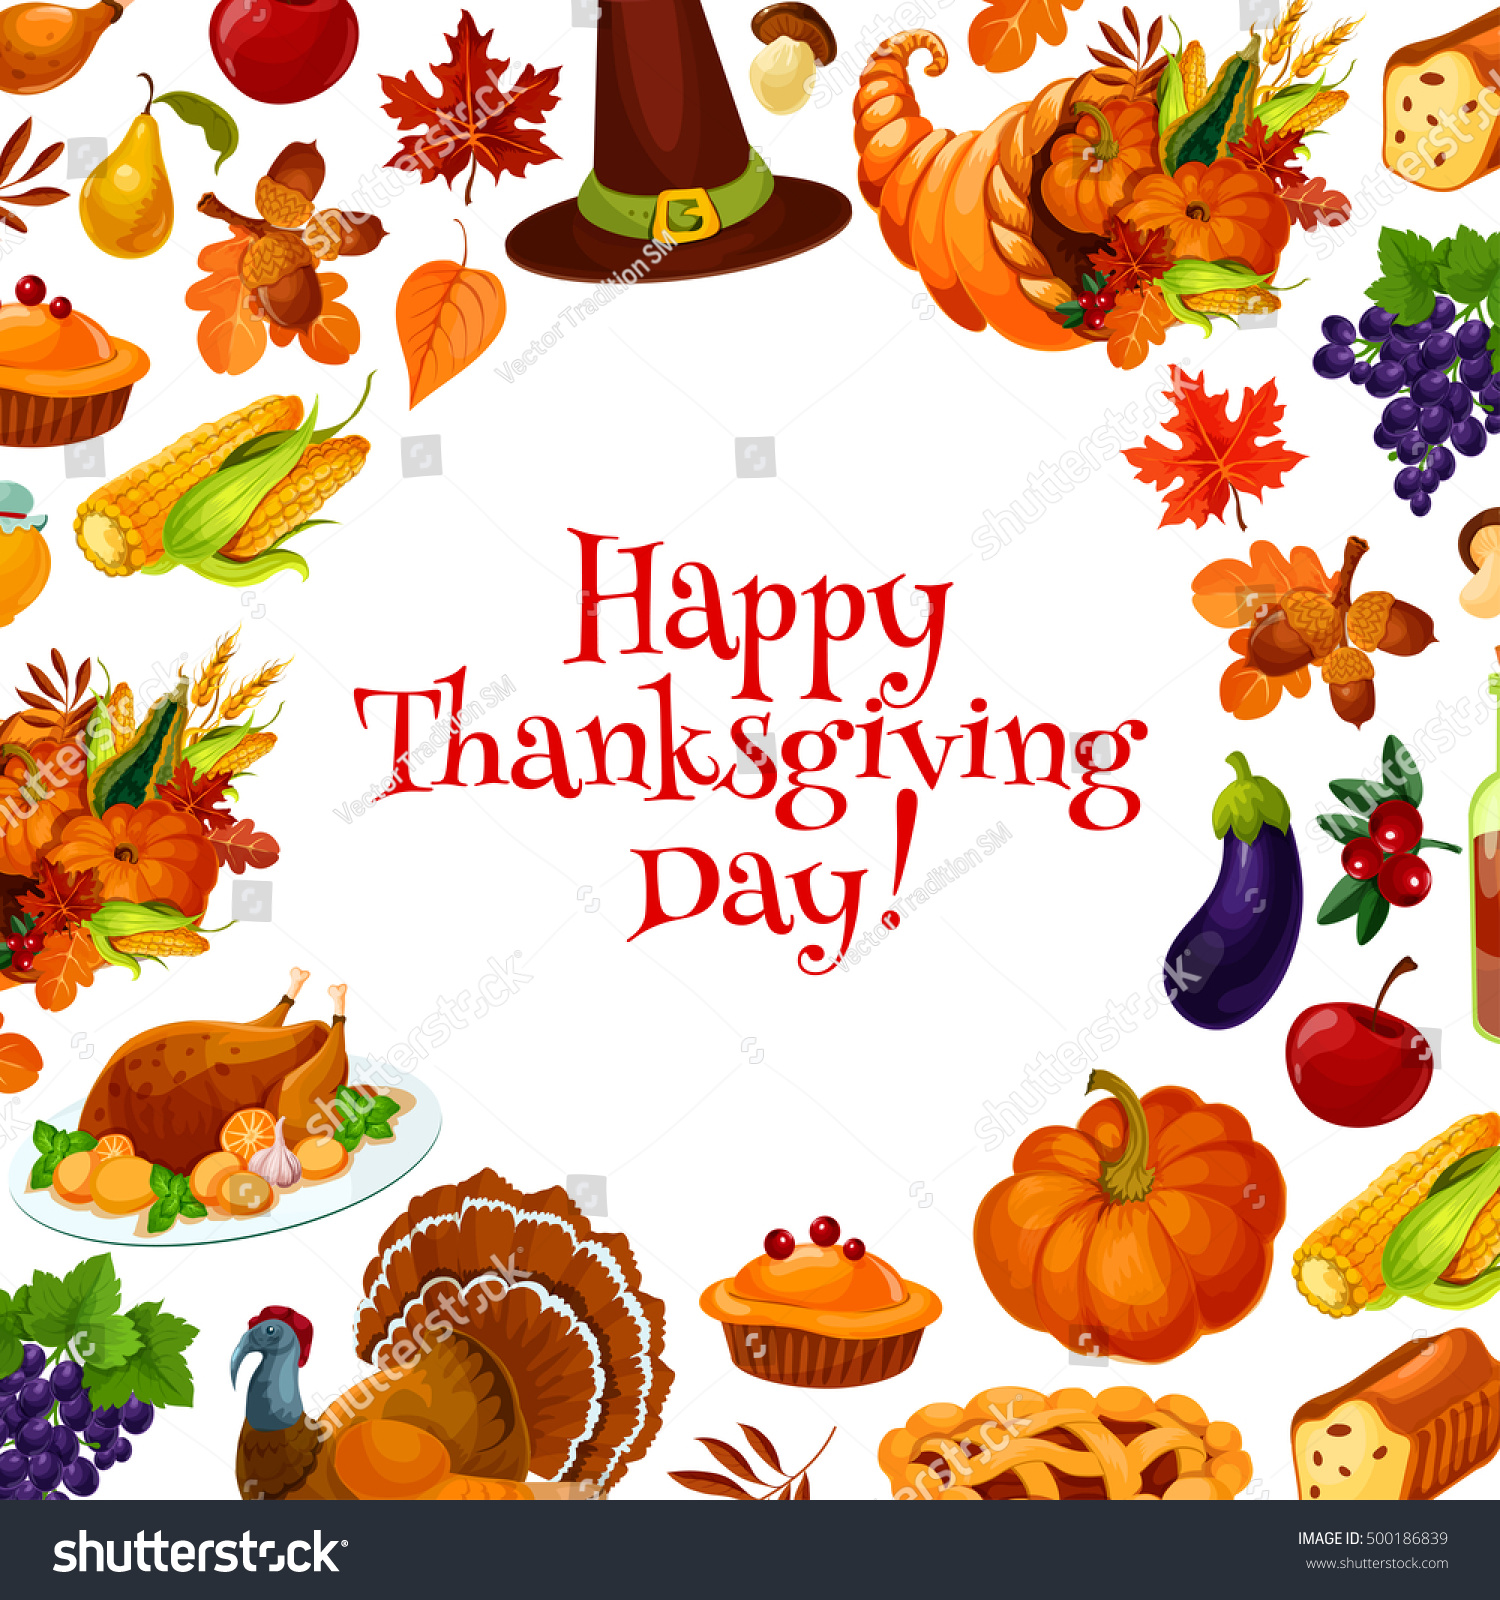 Happy thanksgiving day greeting card banner stock vector 500186839 happy thanksgiving day greeting card banner with text and background of traditional thanksgiving vector elements m4hsunfo